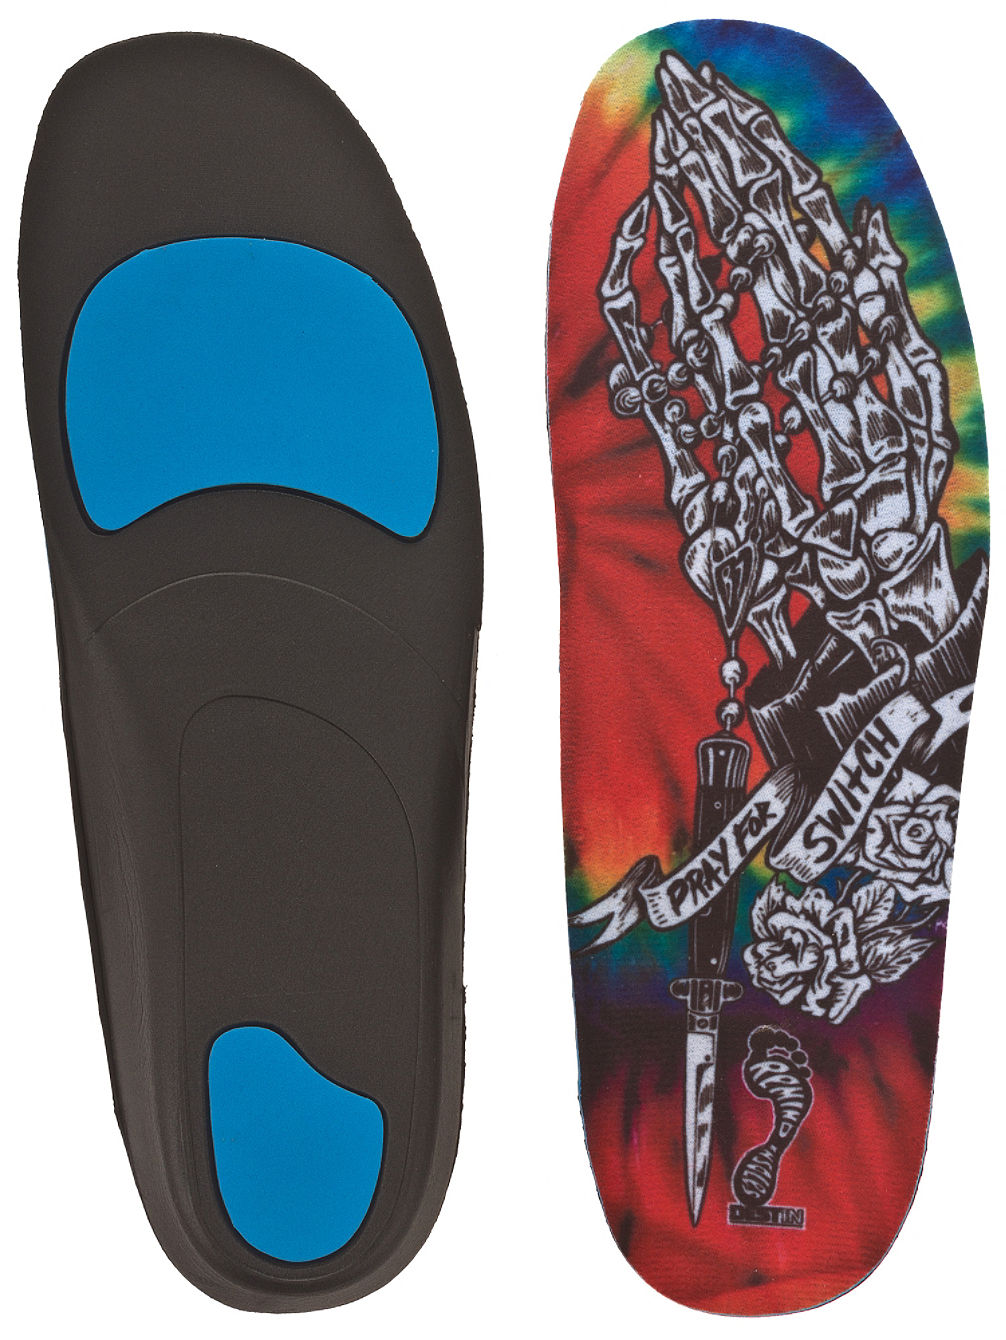 remind-insoles-destin-boo-johnson-orthotic-insoles